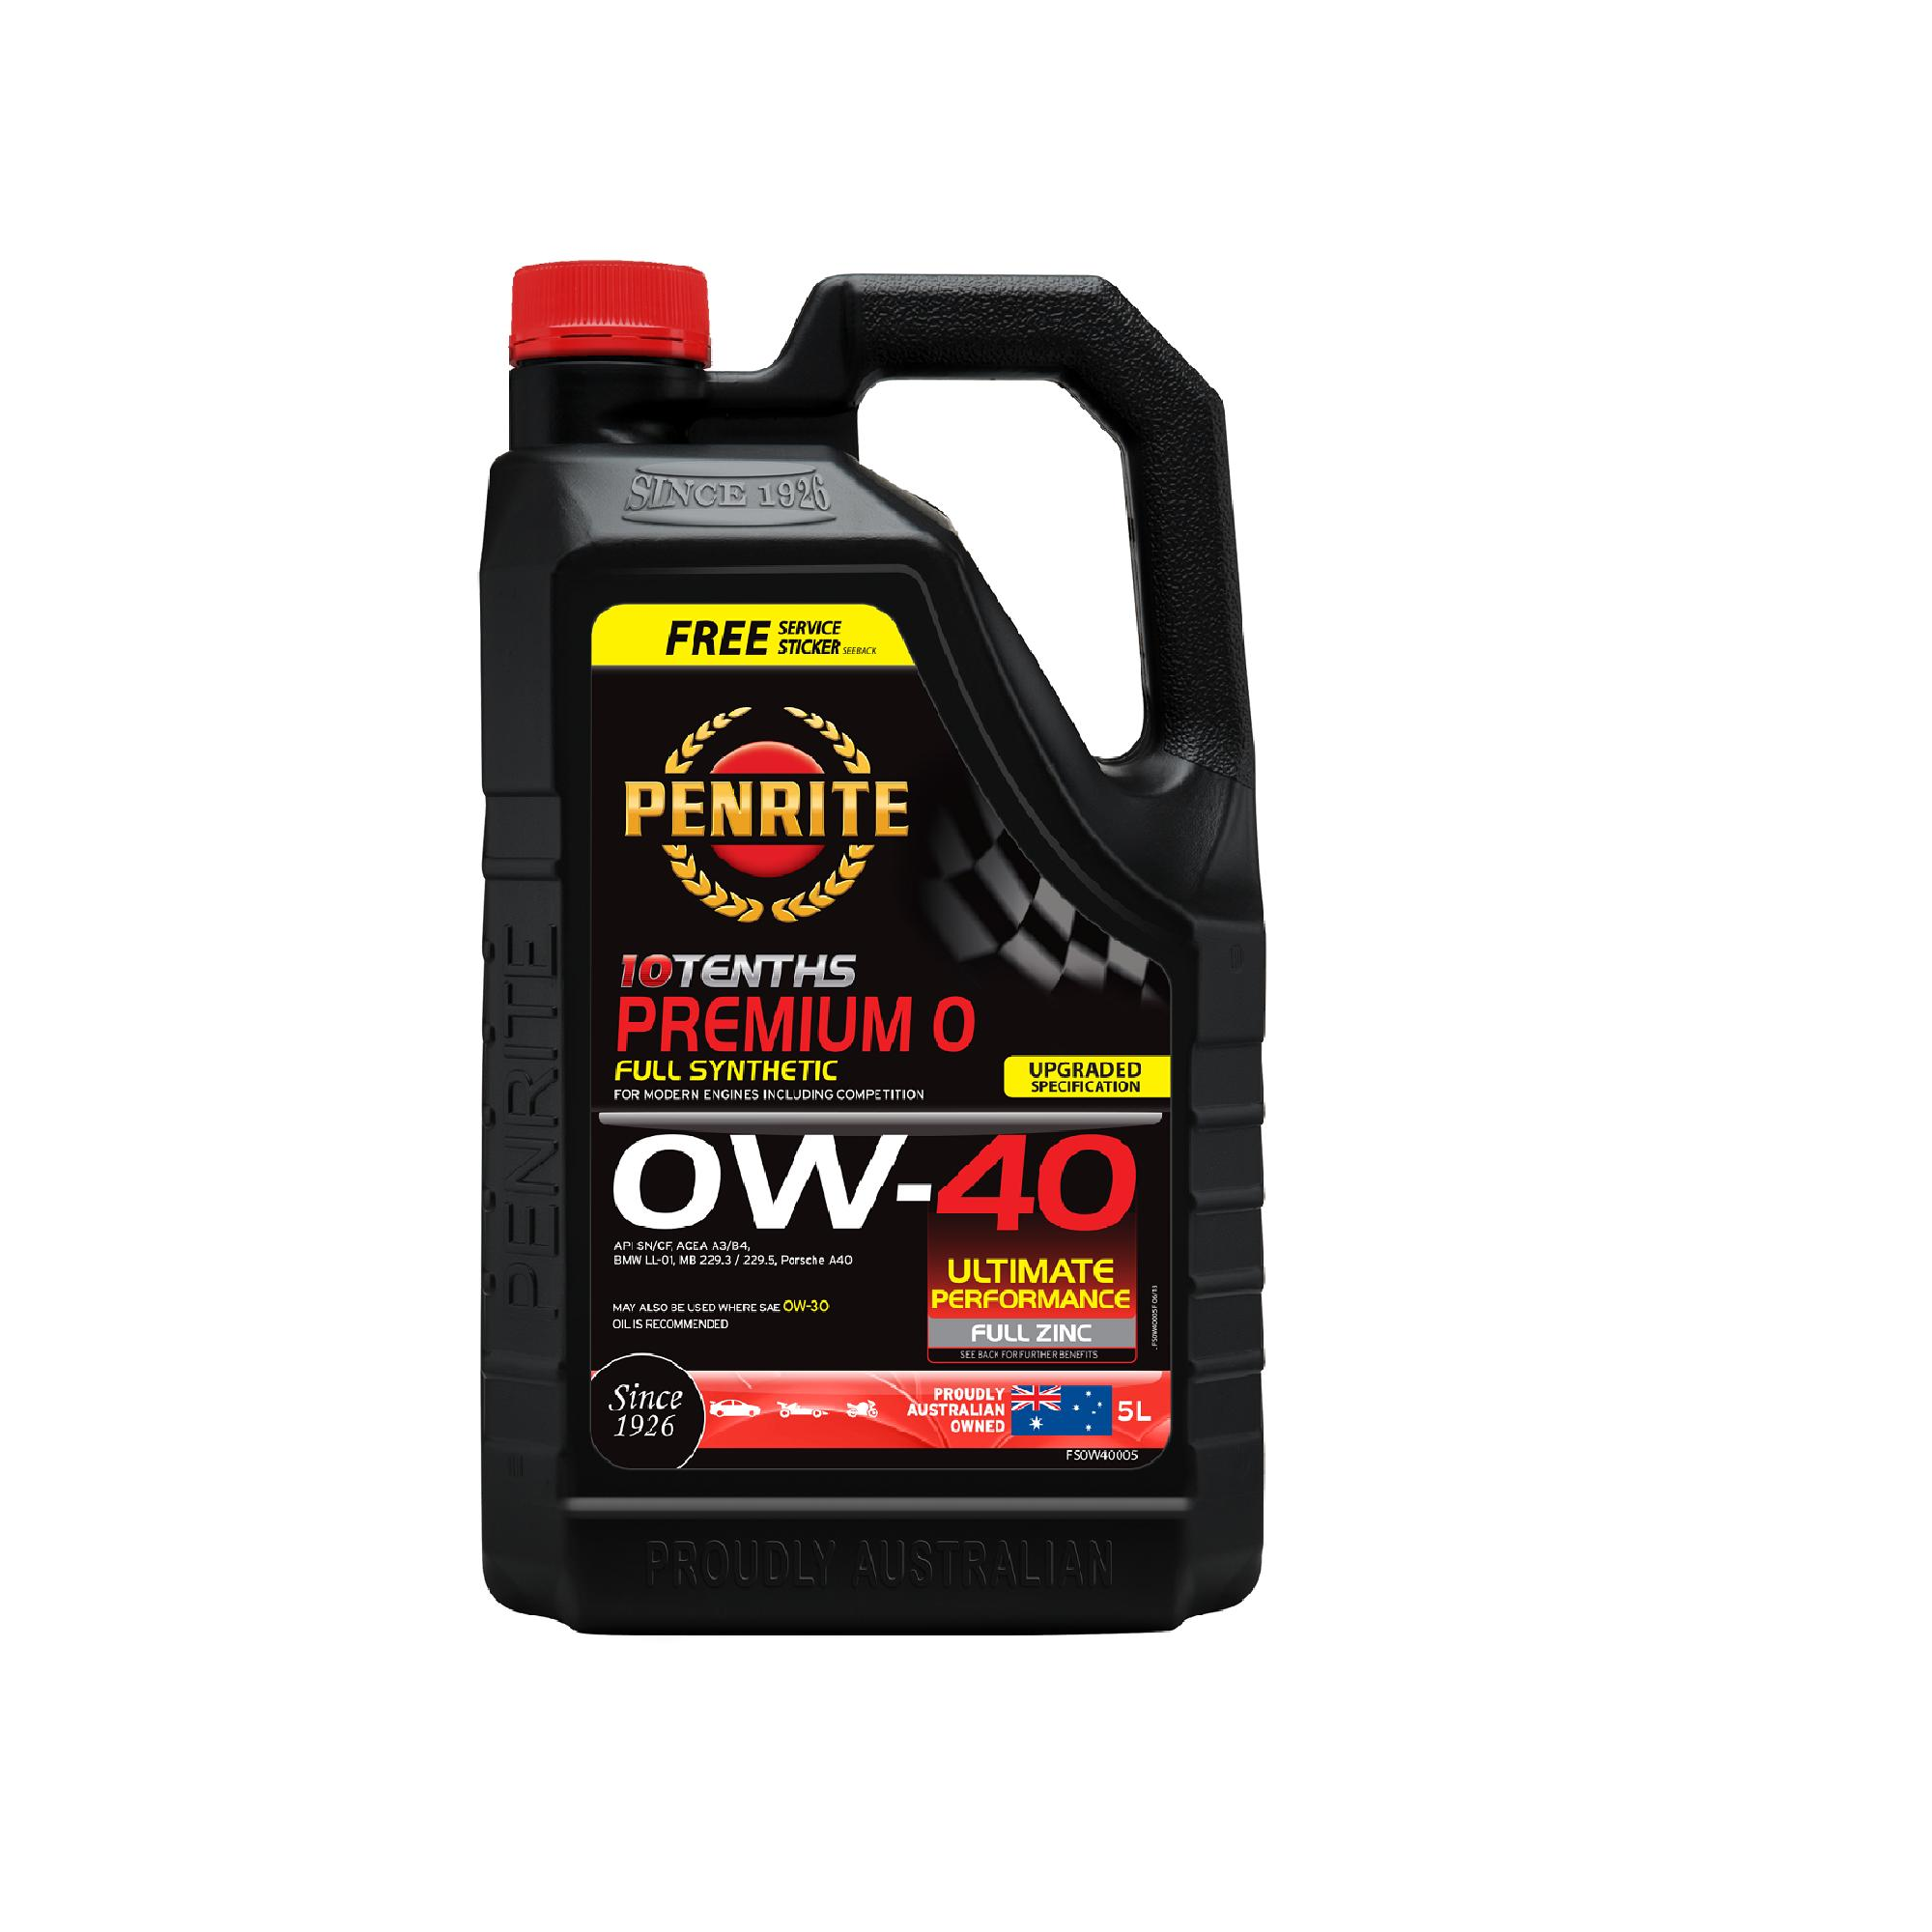 10 TENTHS PREMIUM 0W-40 (Full Synthetic) 5L Engine Oil (0W40)